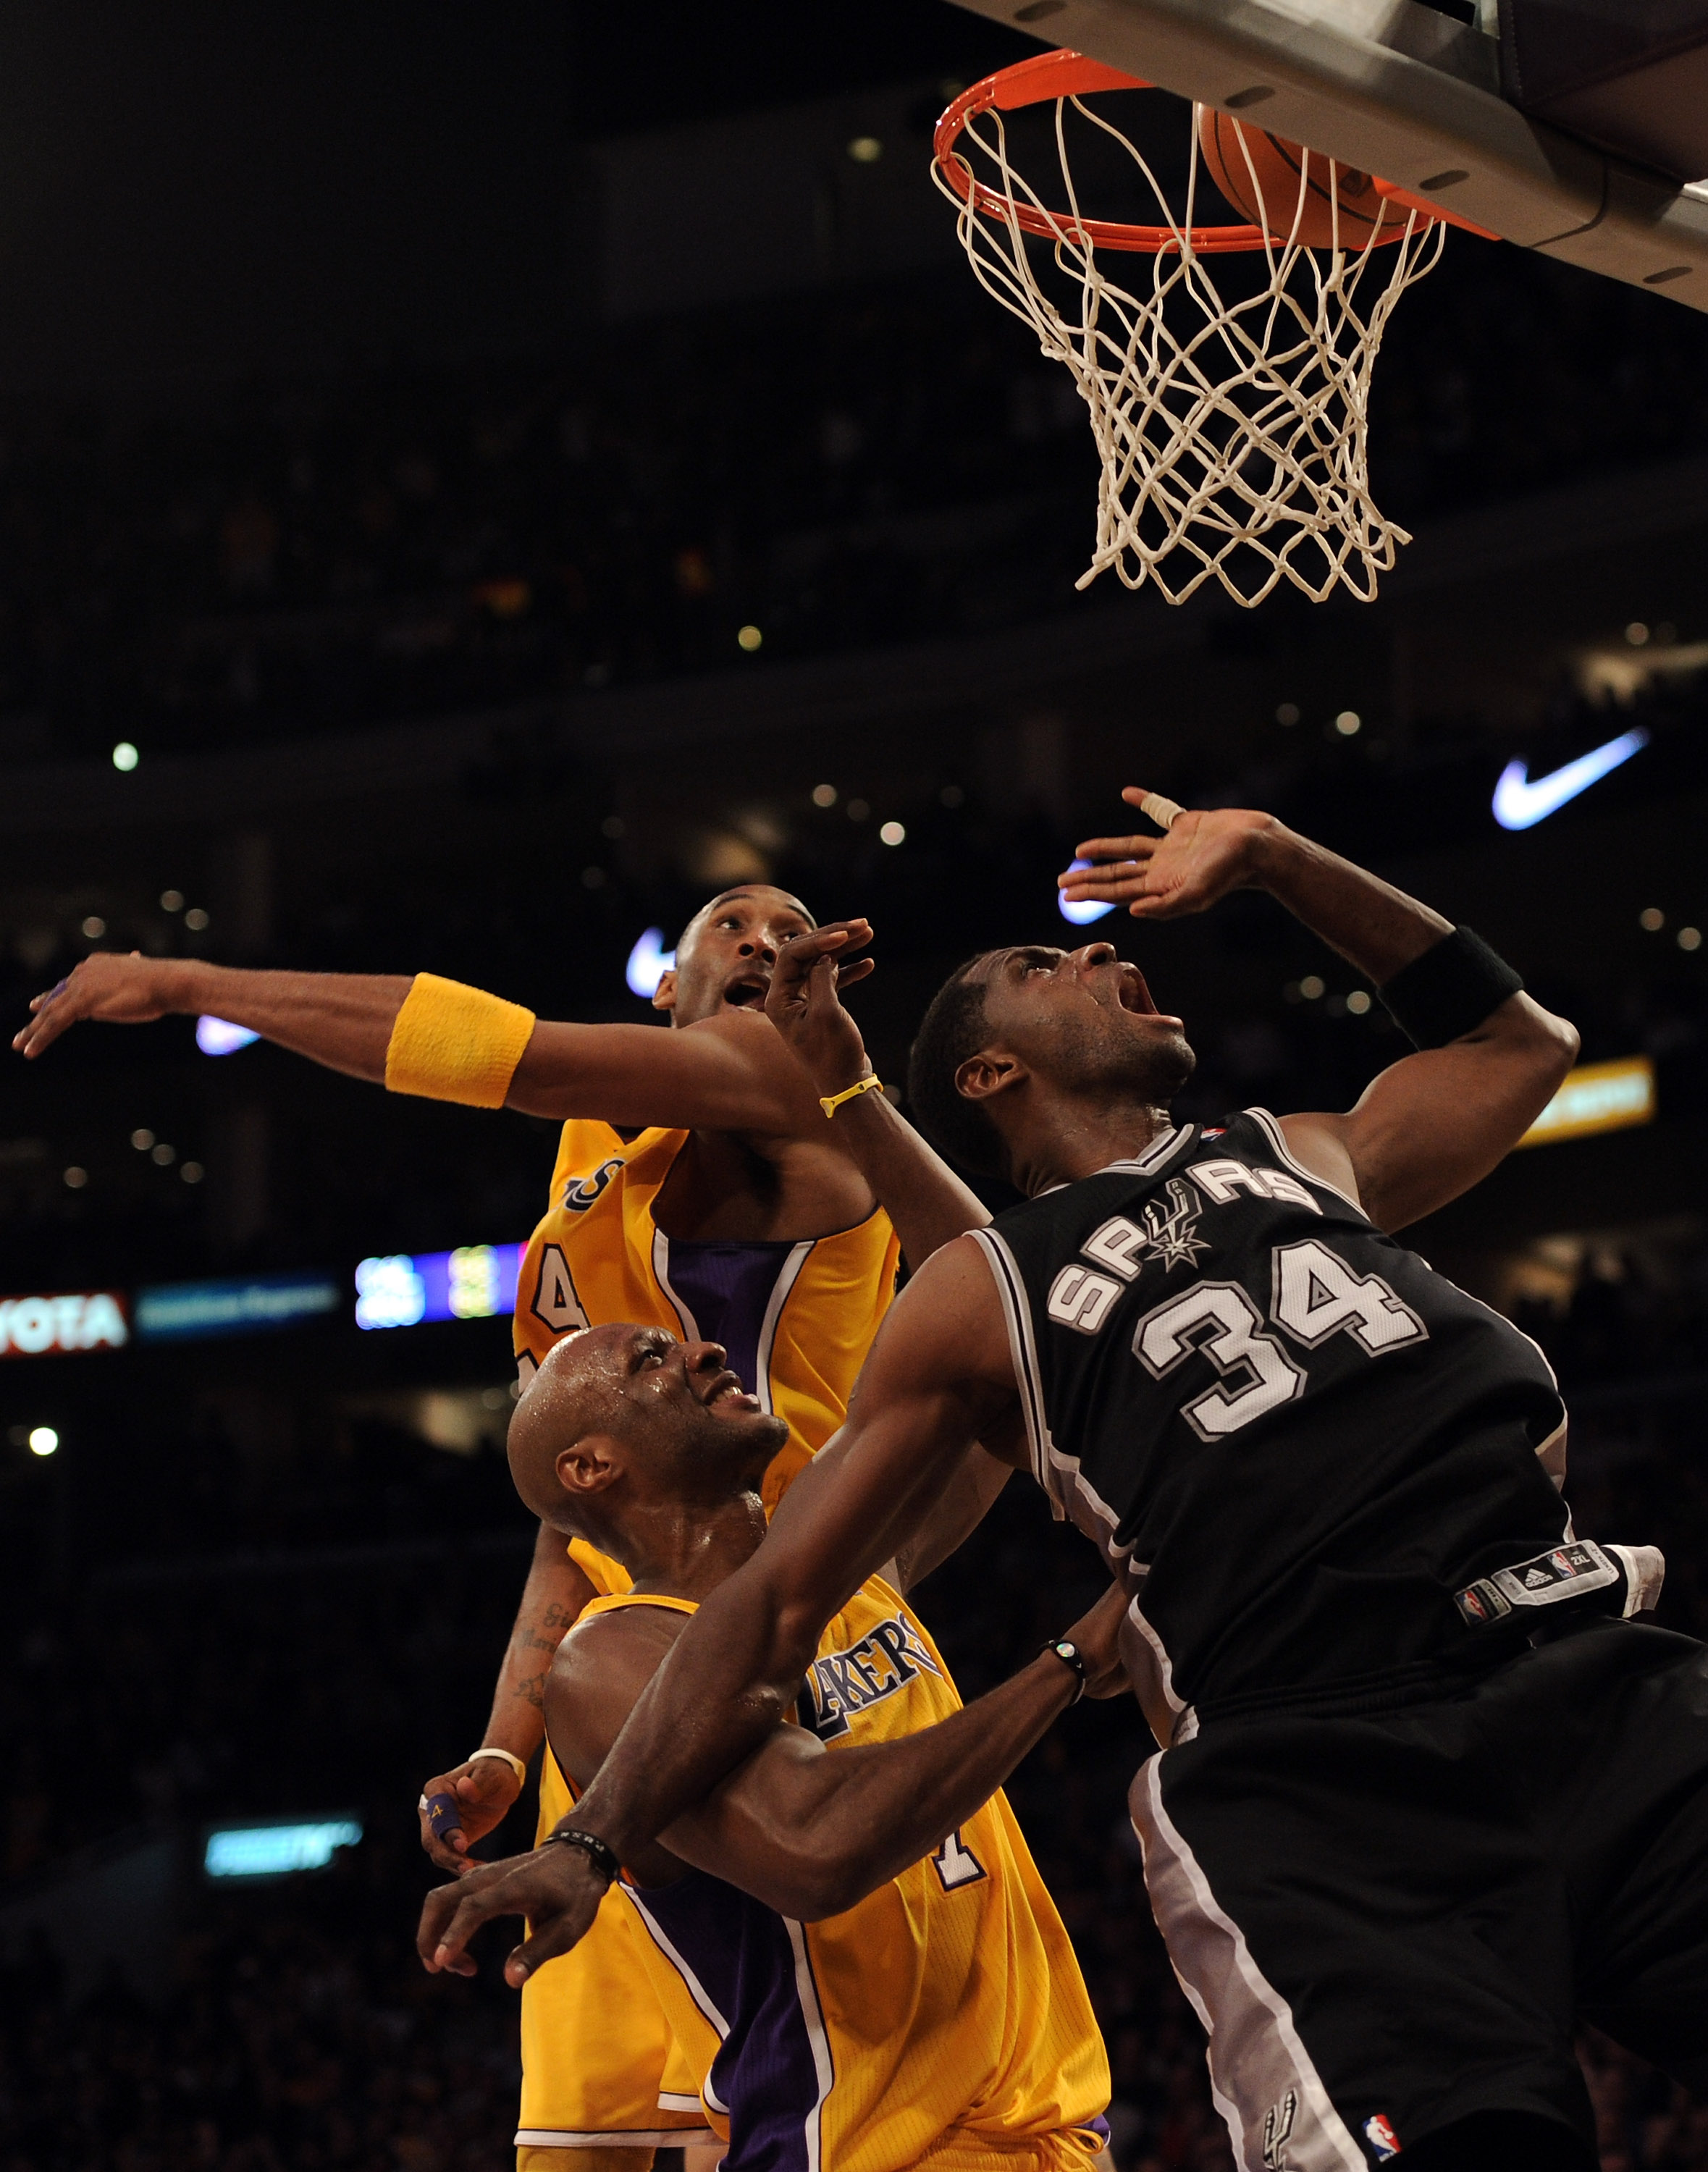 Antonio Mcdyess picked up a huge momentum win for San Antonio in L.A. last week